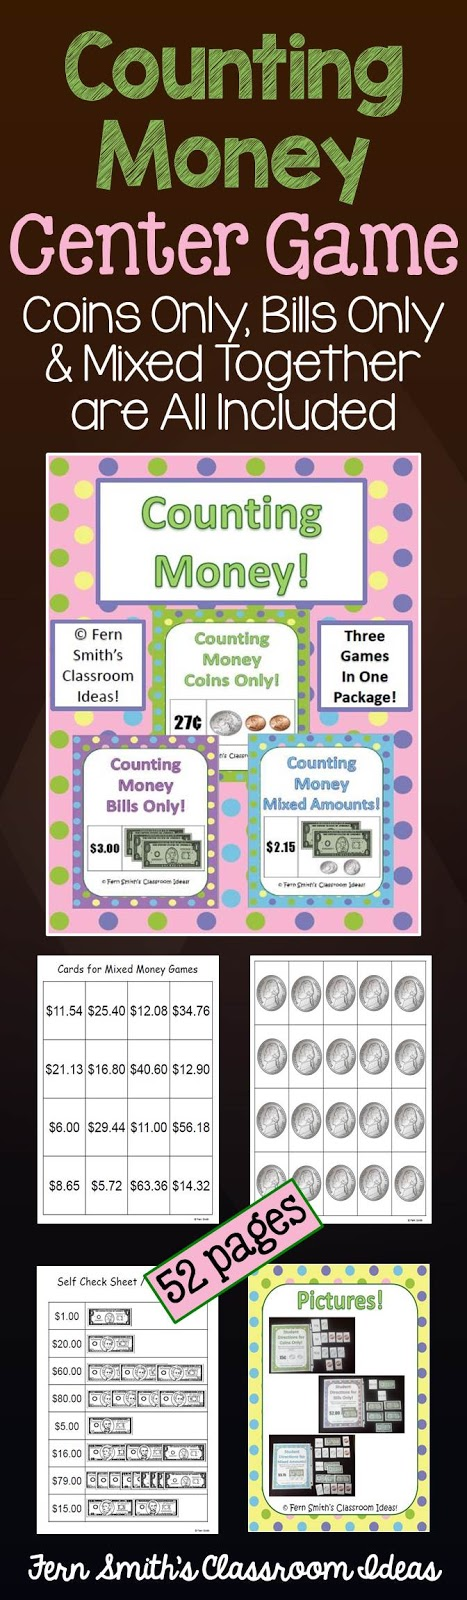 Fern Smith's Classroom Ideas Counting Money Center Game at TeachersPayTeachers